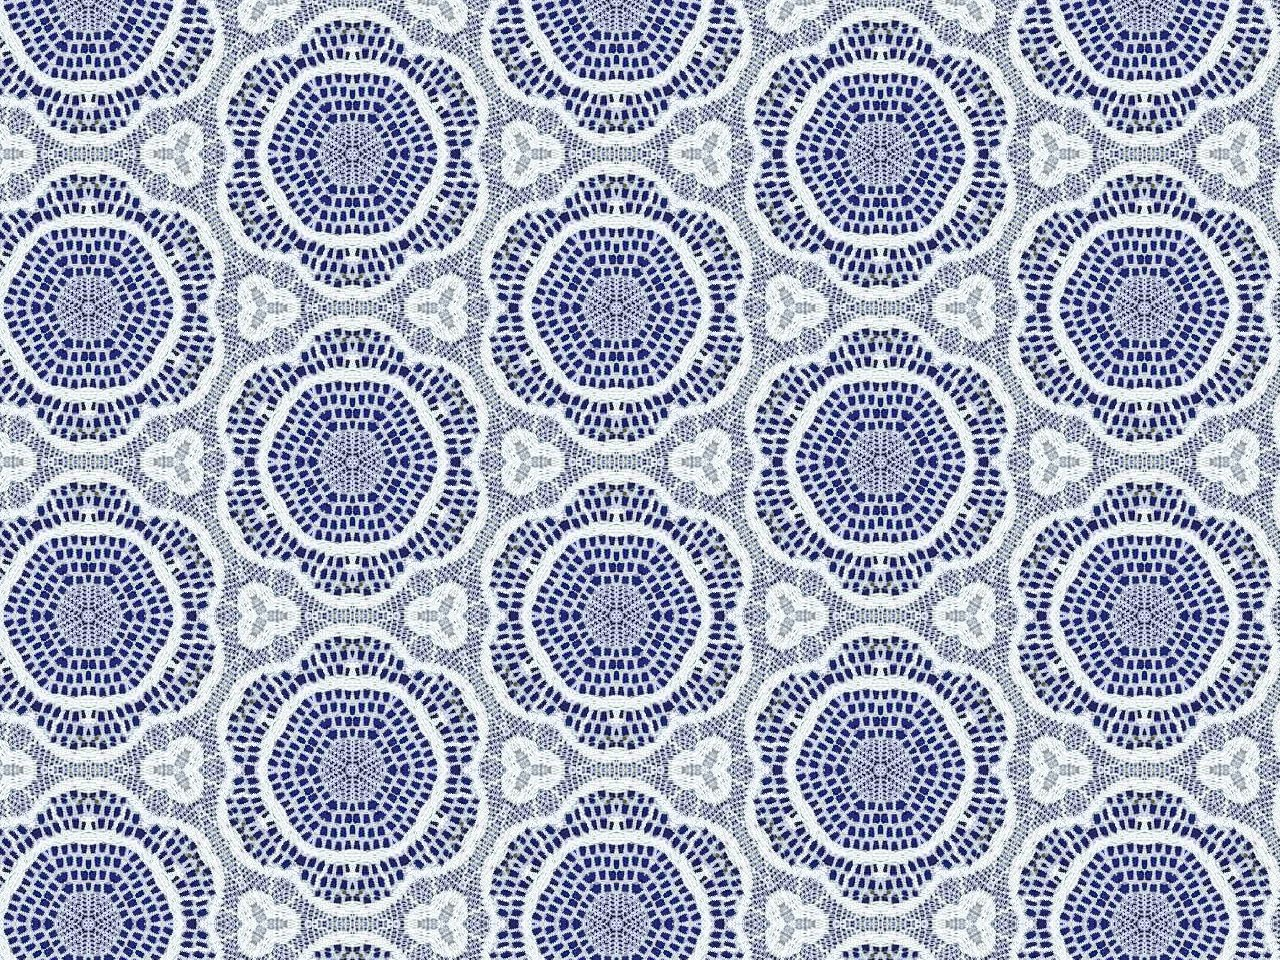 Images of Lace Blue background with delicate lace fabric patterns 1280x960